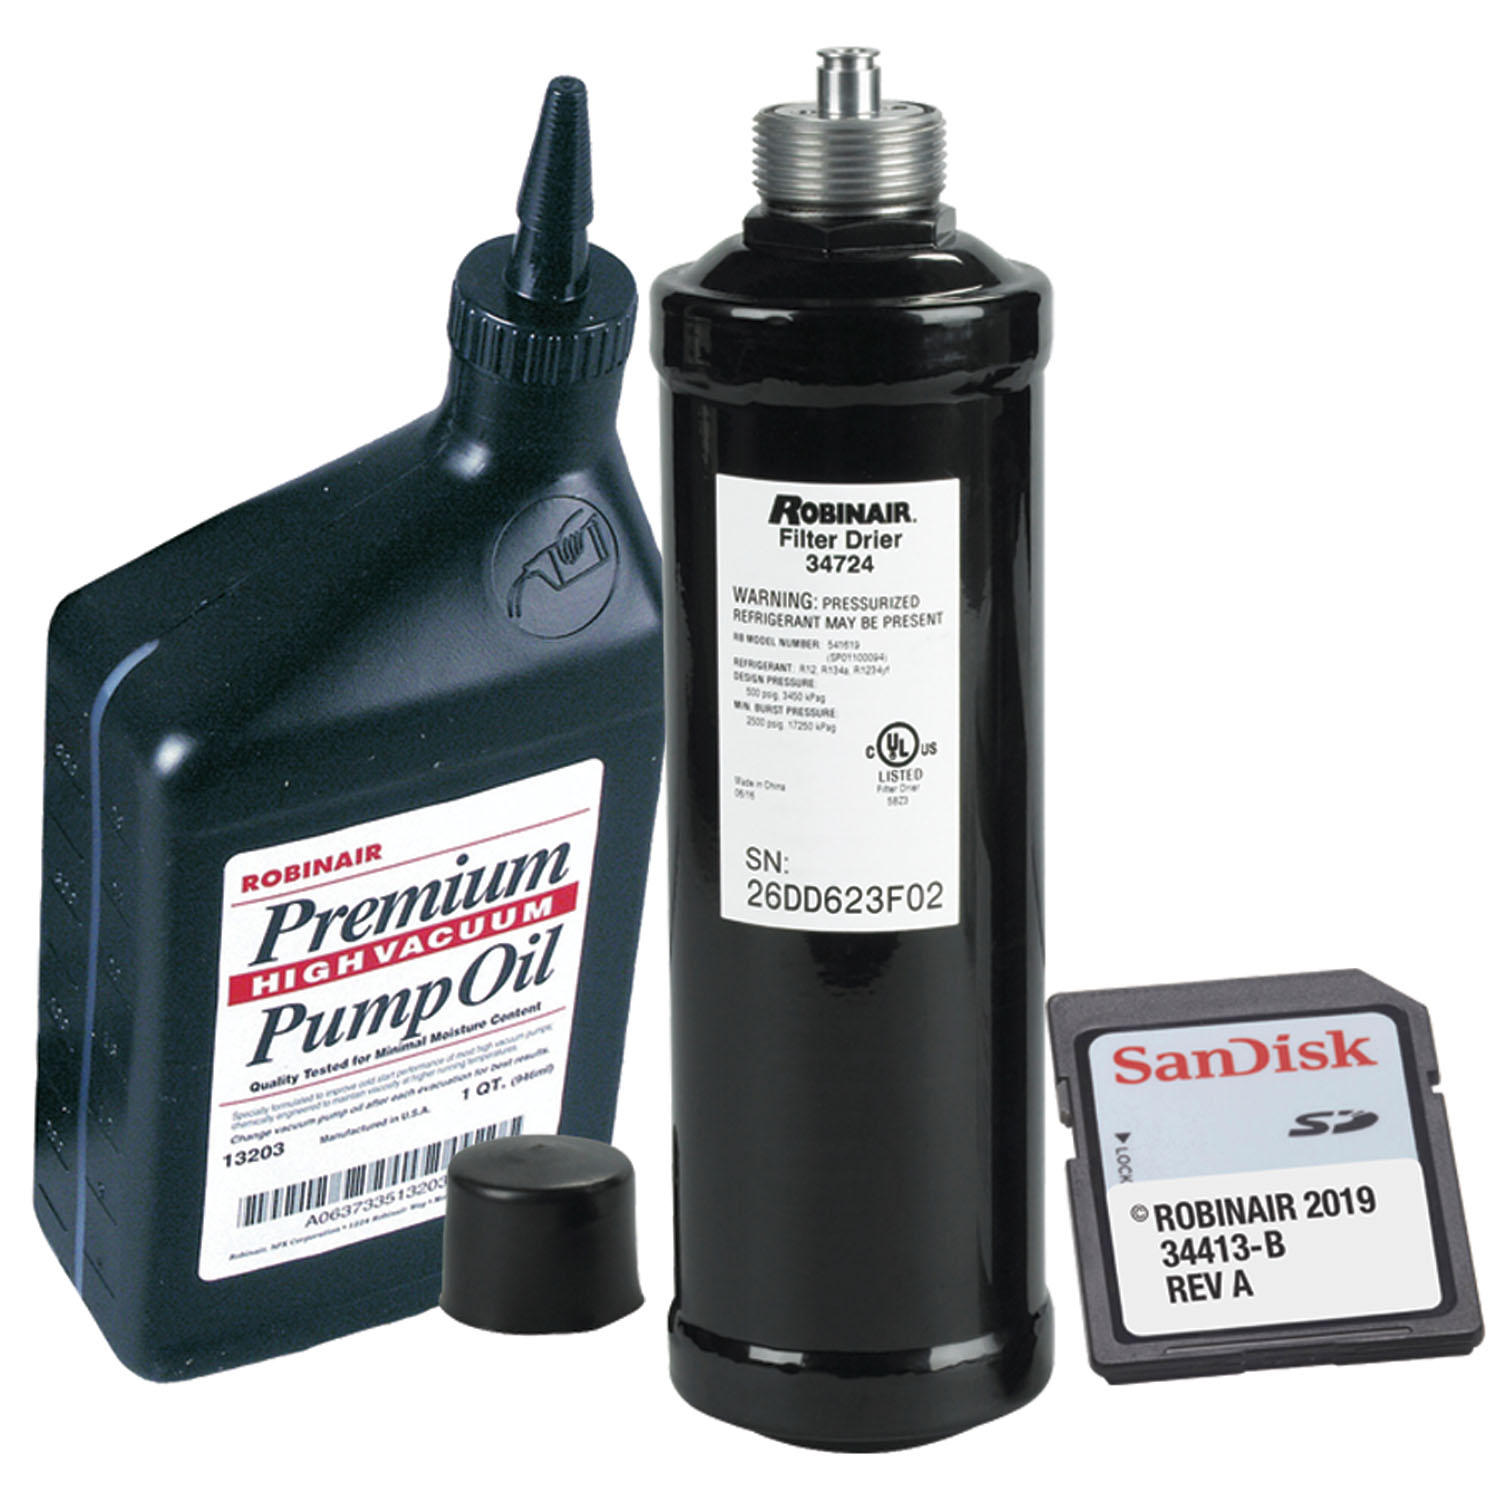 Robinair Combo Kit for R1234YF Vehicle A/C Refrigerant Database 2019 w/ Recycling Filter & Pump Oil - 16 oz